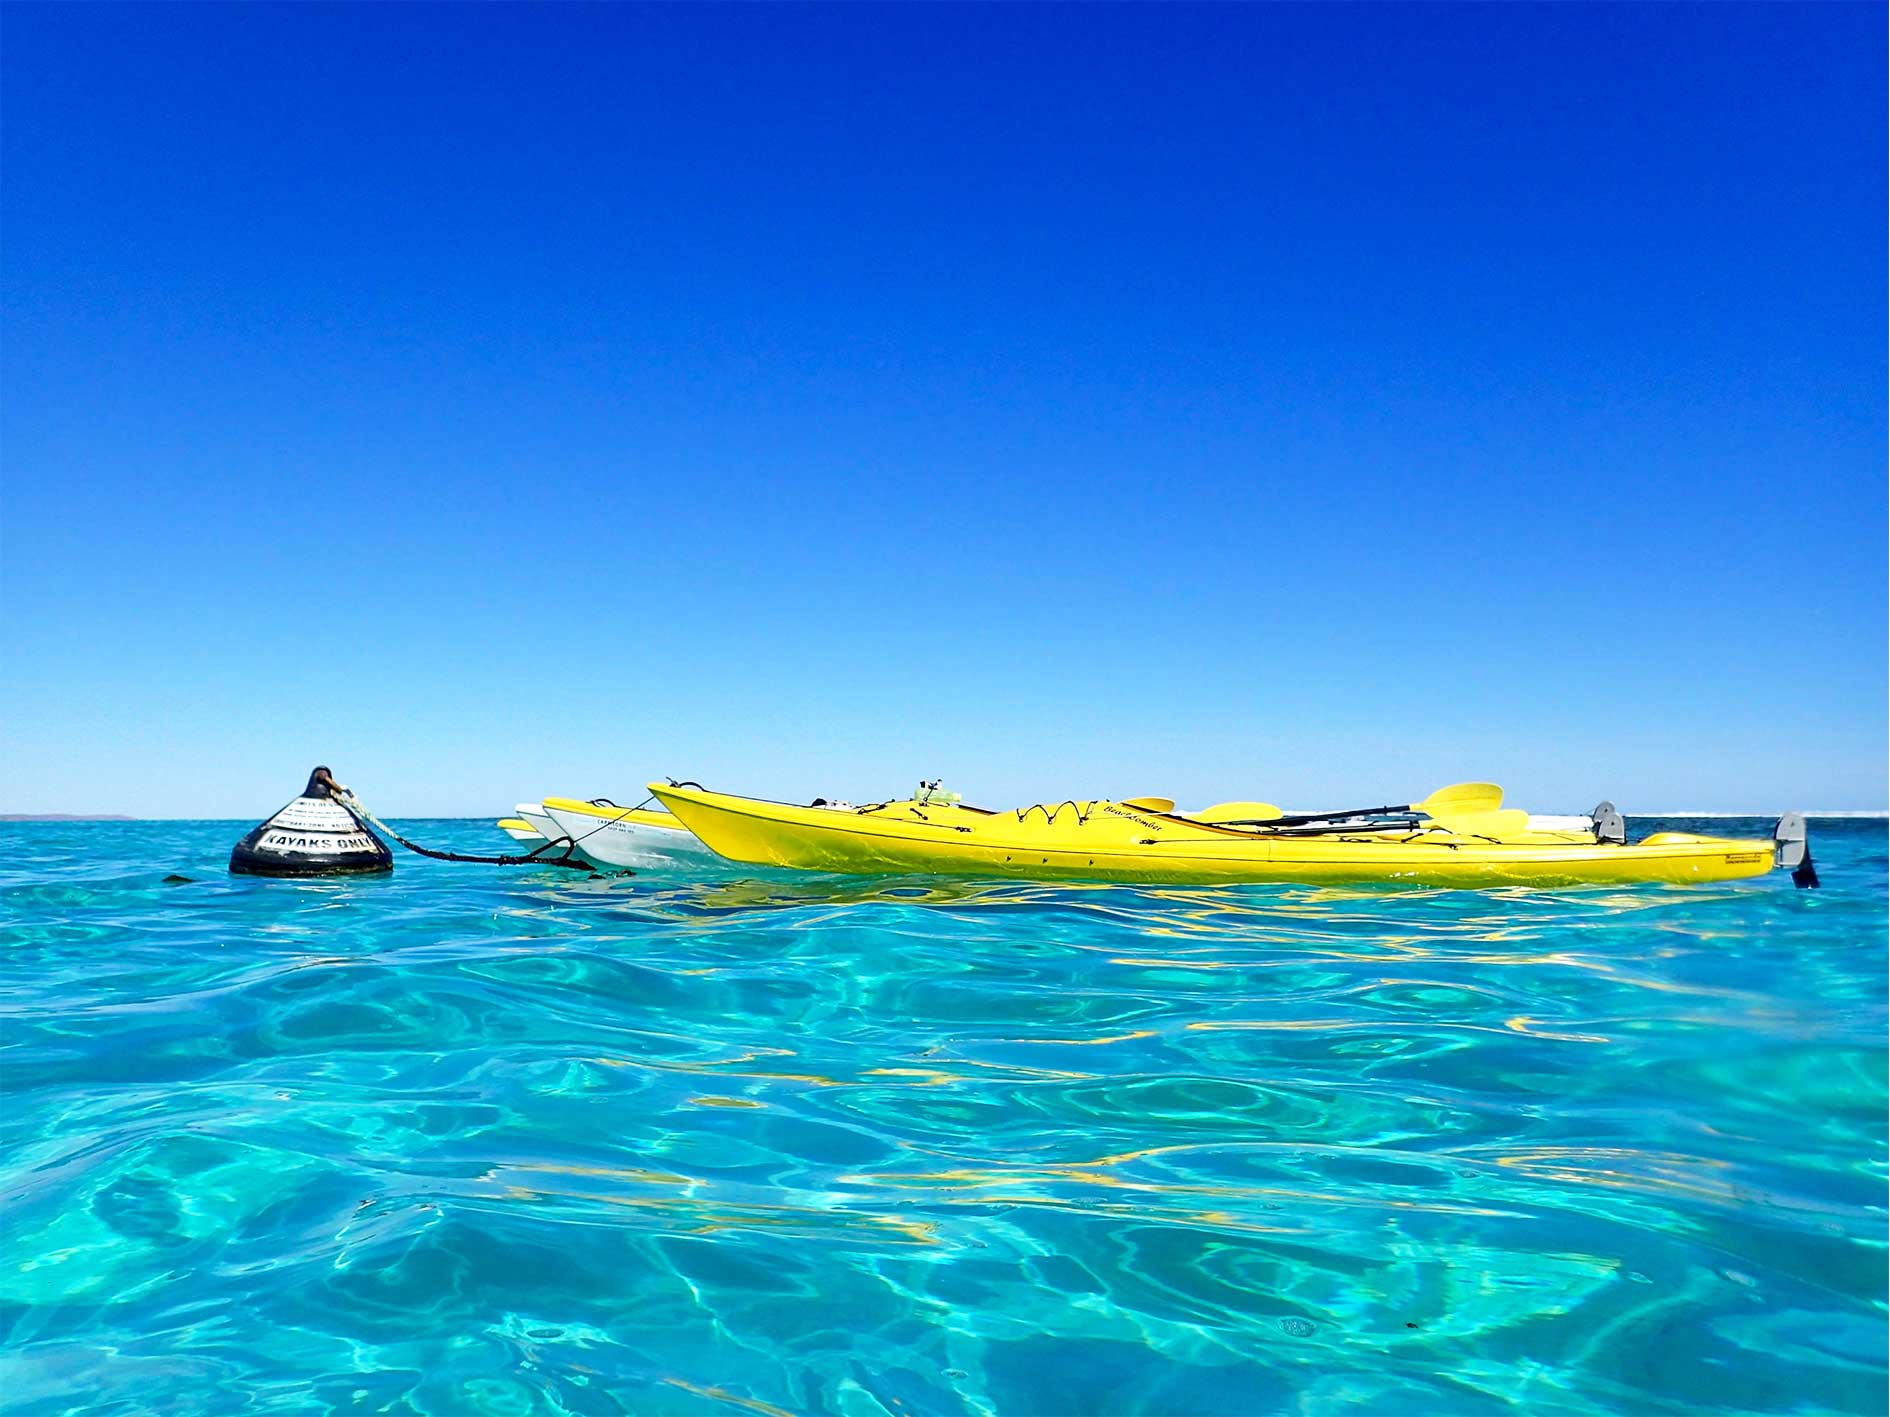 5 Day Ultimate Safari, Sea Kayak Ningaloo, multi day tour exmouth ningaloo, camping tour ningaloo, best tour exmouth, Whale Shark, sea kayak, snorkel, bush walk, base camp, eco tour, Ningaloo Reef, Exmouth, Western Australia